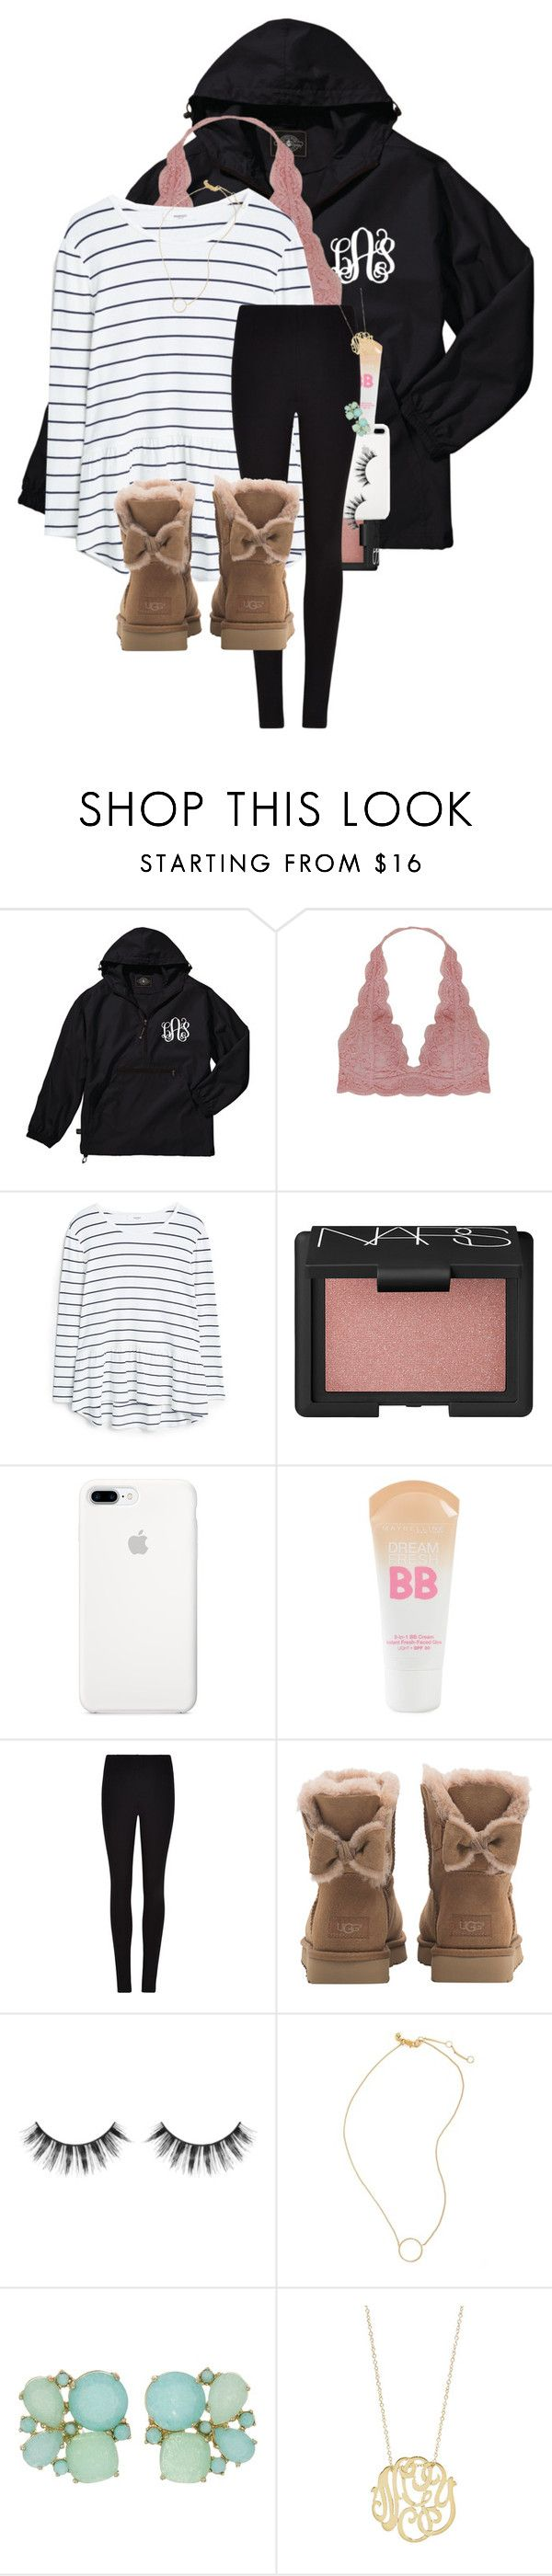 """""""This is us is on tonight!! """" by erinlmarkel ❤ liked on Polyvore featuring Humble Chic, MANGO, NARS Cosmetics, Maybelline, Winser London, UGG, Sephora Collection, Madewell, Kate Spade and Ginette NY"""